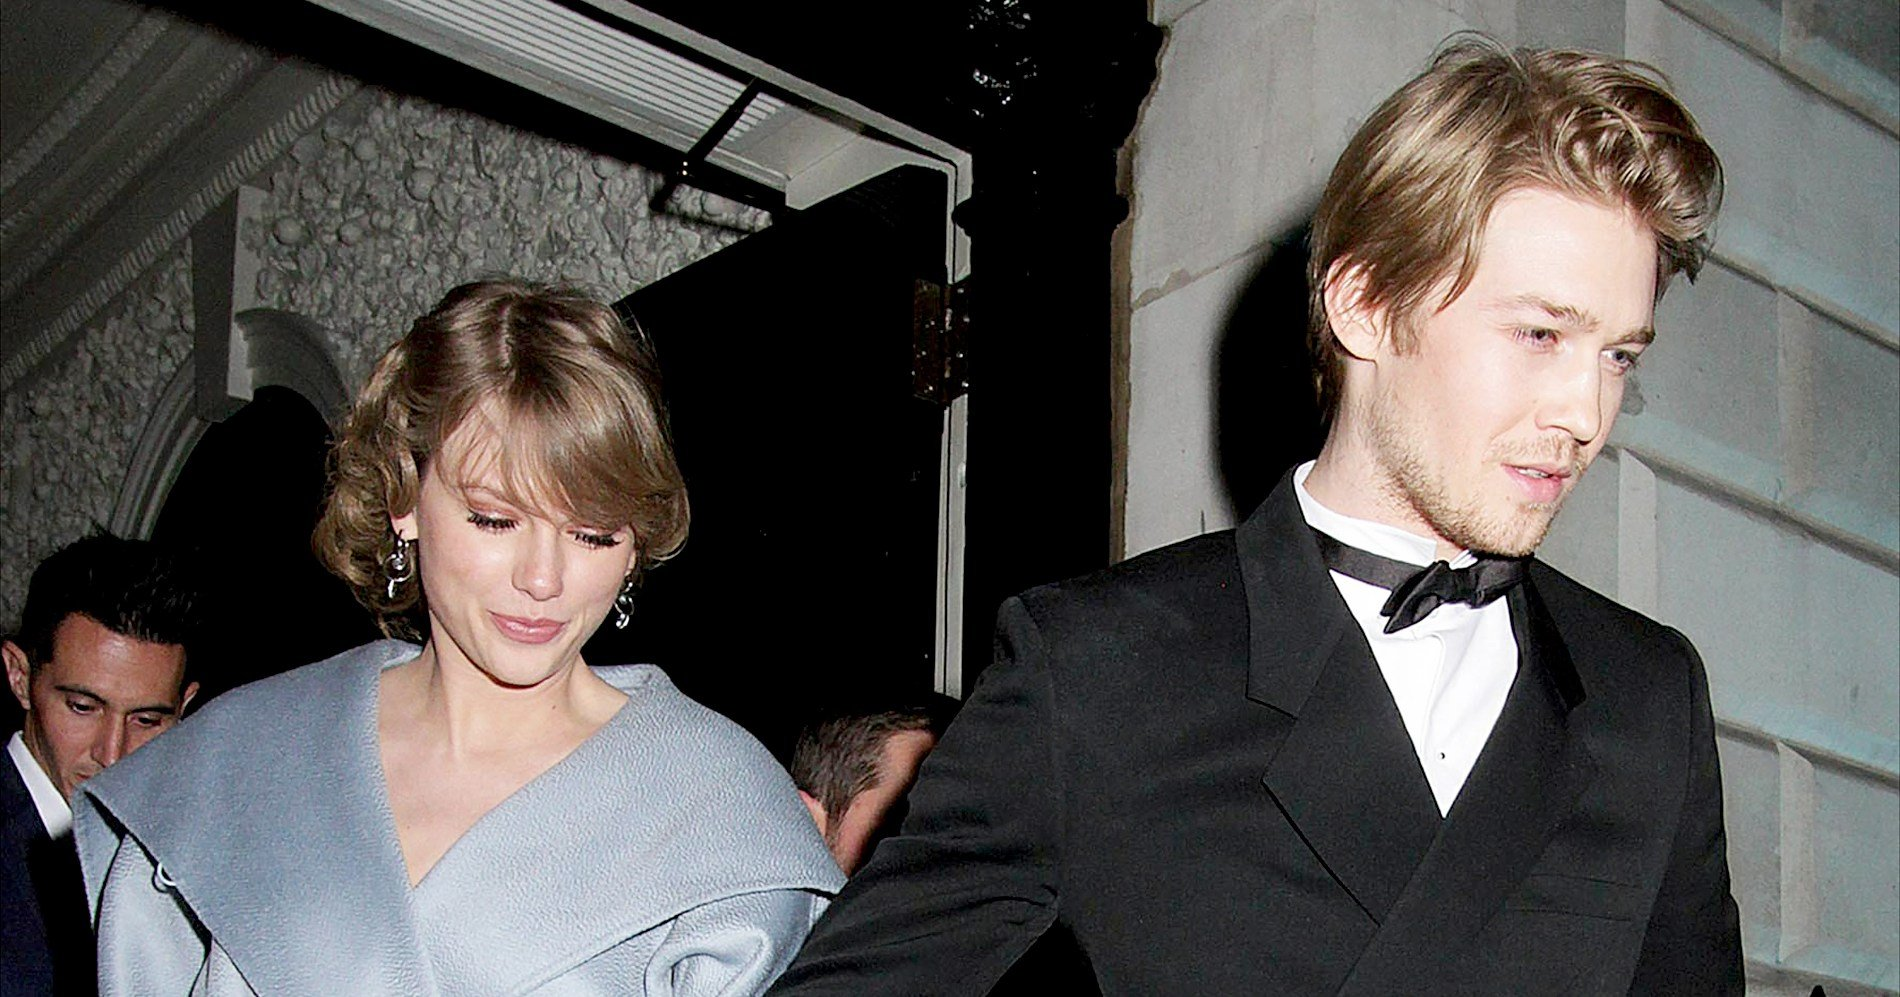 Princess Vibes! Taylor Swift, BF Joe Alwyn Hold Hands at BAFTAs Afterparty